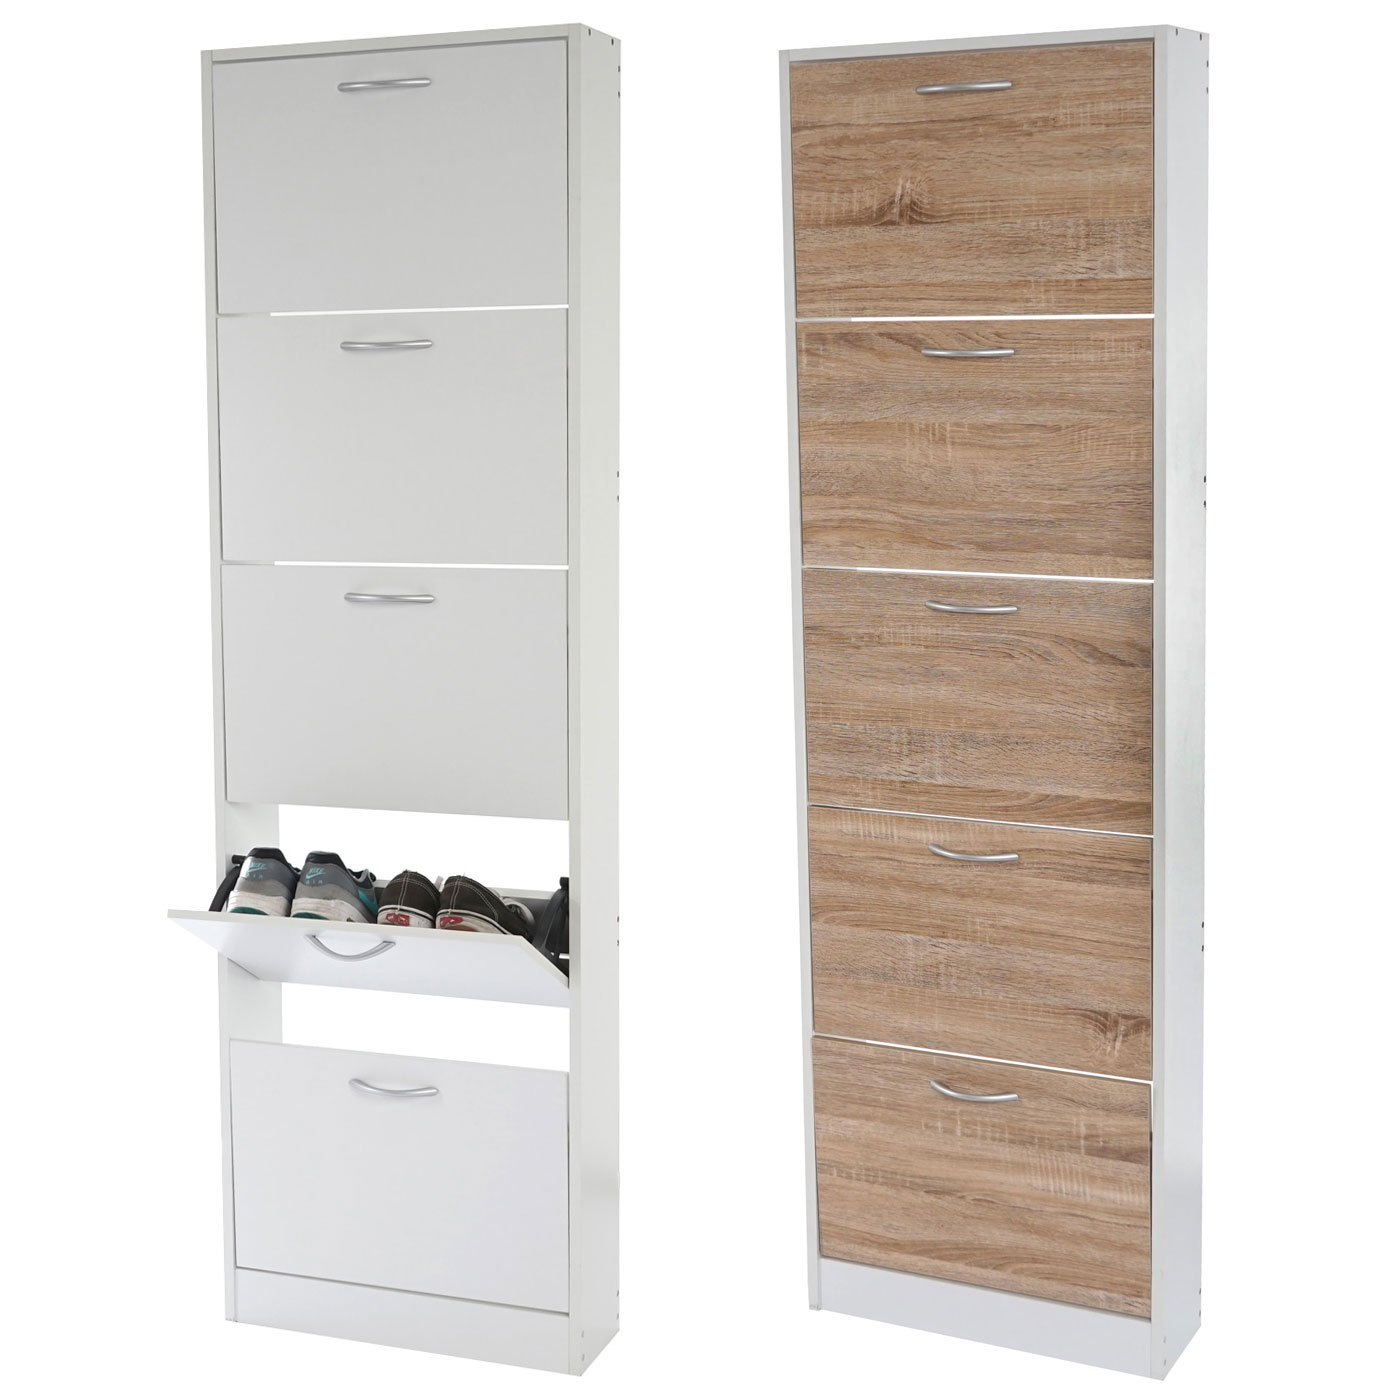 schuhschrank t363 schukipper schuhregal 170x51x17cm ebay. Black Bedroom Furniture Sets. Home Design Ideas